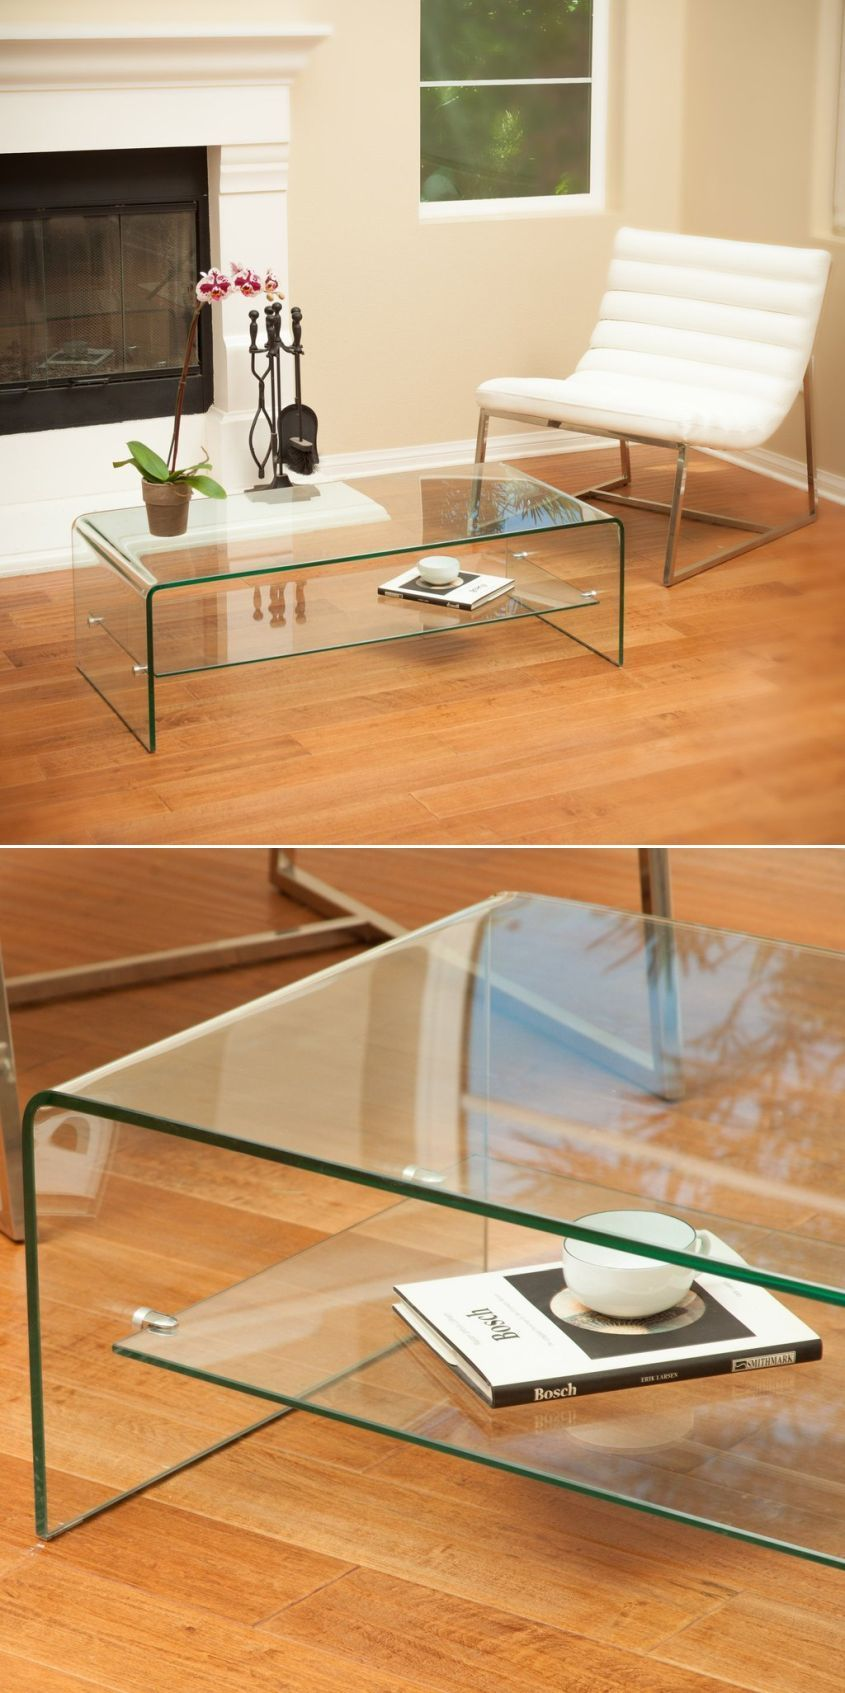 Amazing Two Tier Contemporary Mirrored Coffee Table Glass Top With Stainless Steel Bas Modern Square Coffee Table Square Glass Coffee Table Luxury Coffee Table [ 3072 x 4608 Pixel ]